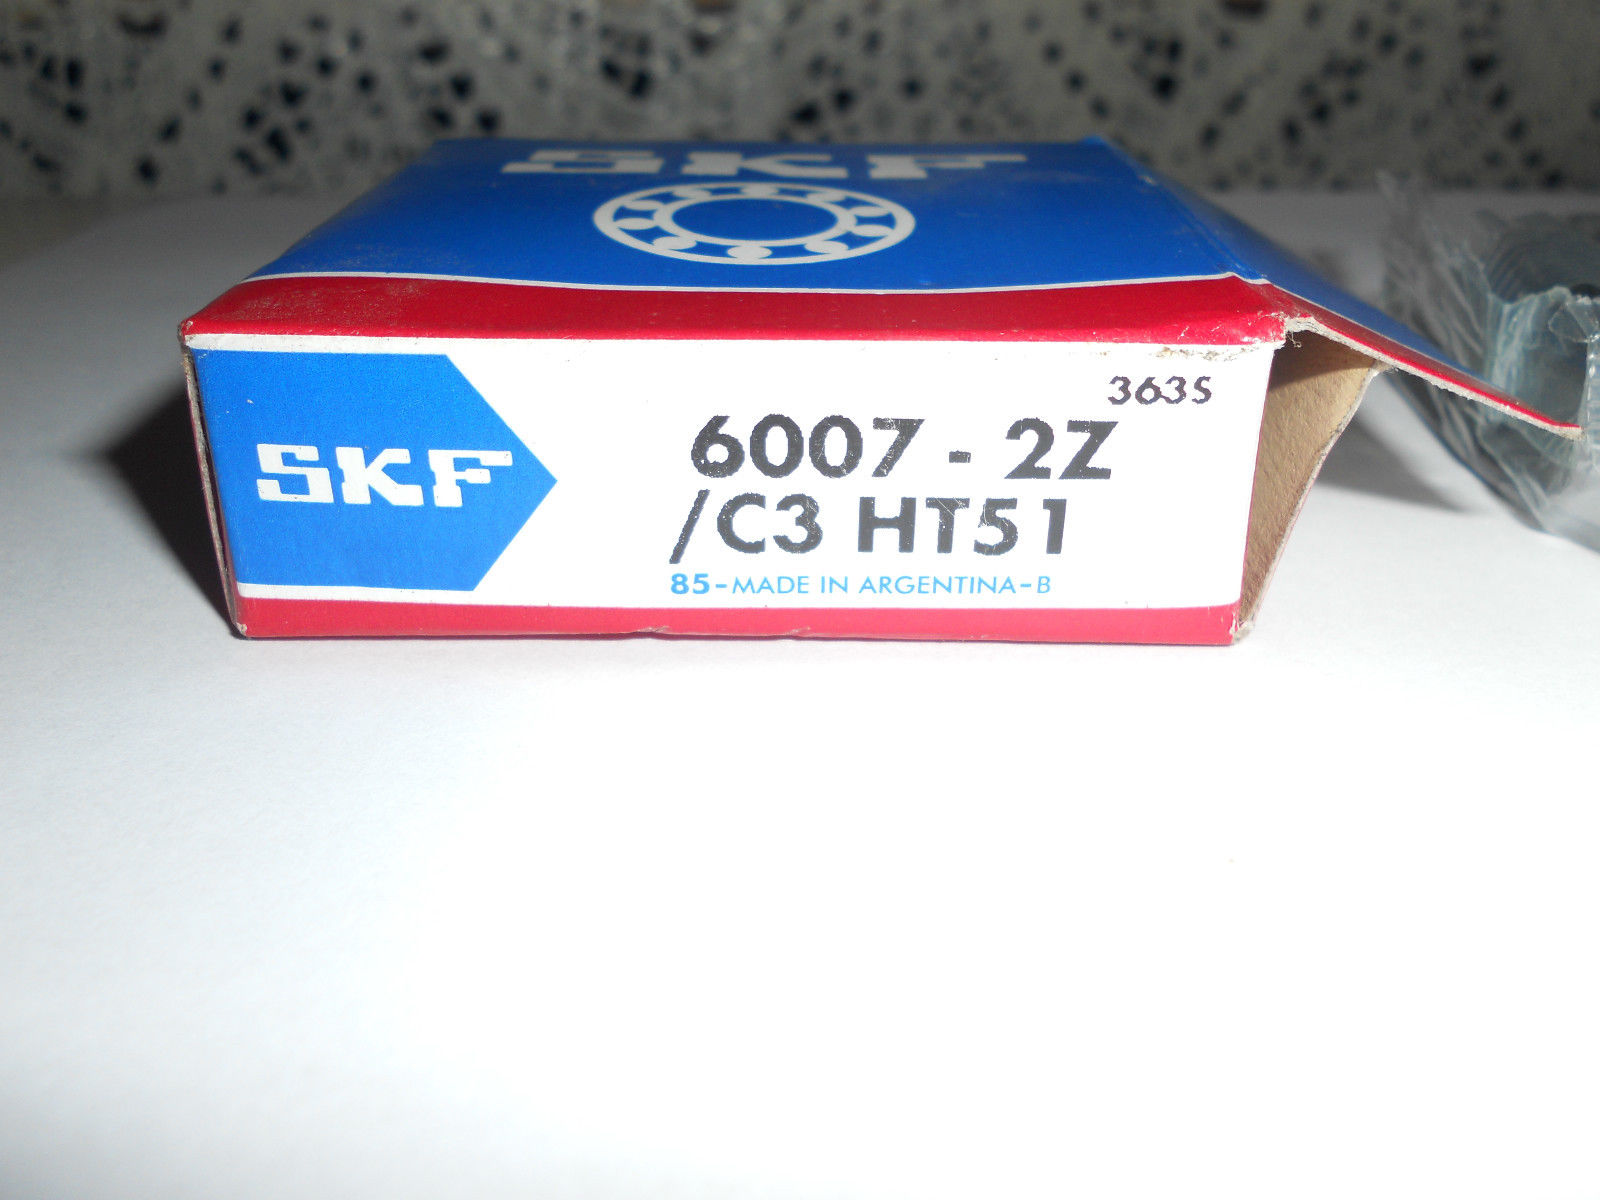 high temperature ** Brand New NIB SKF 6007-2Z/C3HT51 sealed roller ball bearing **